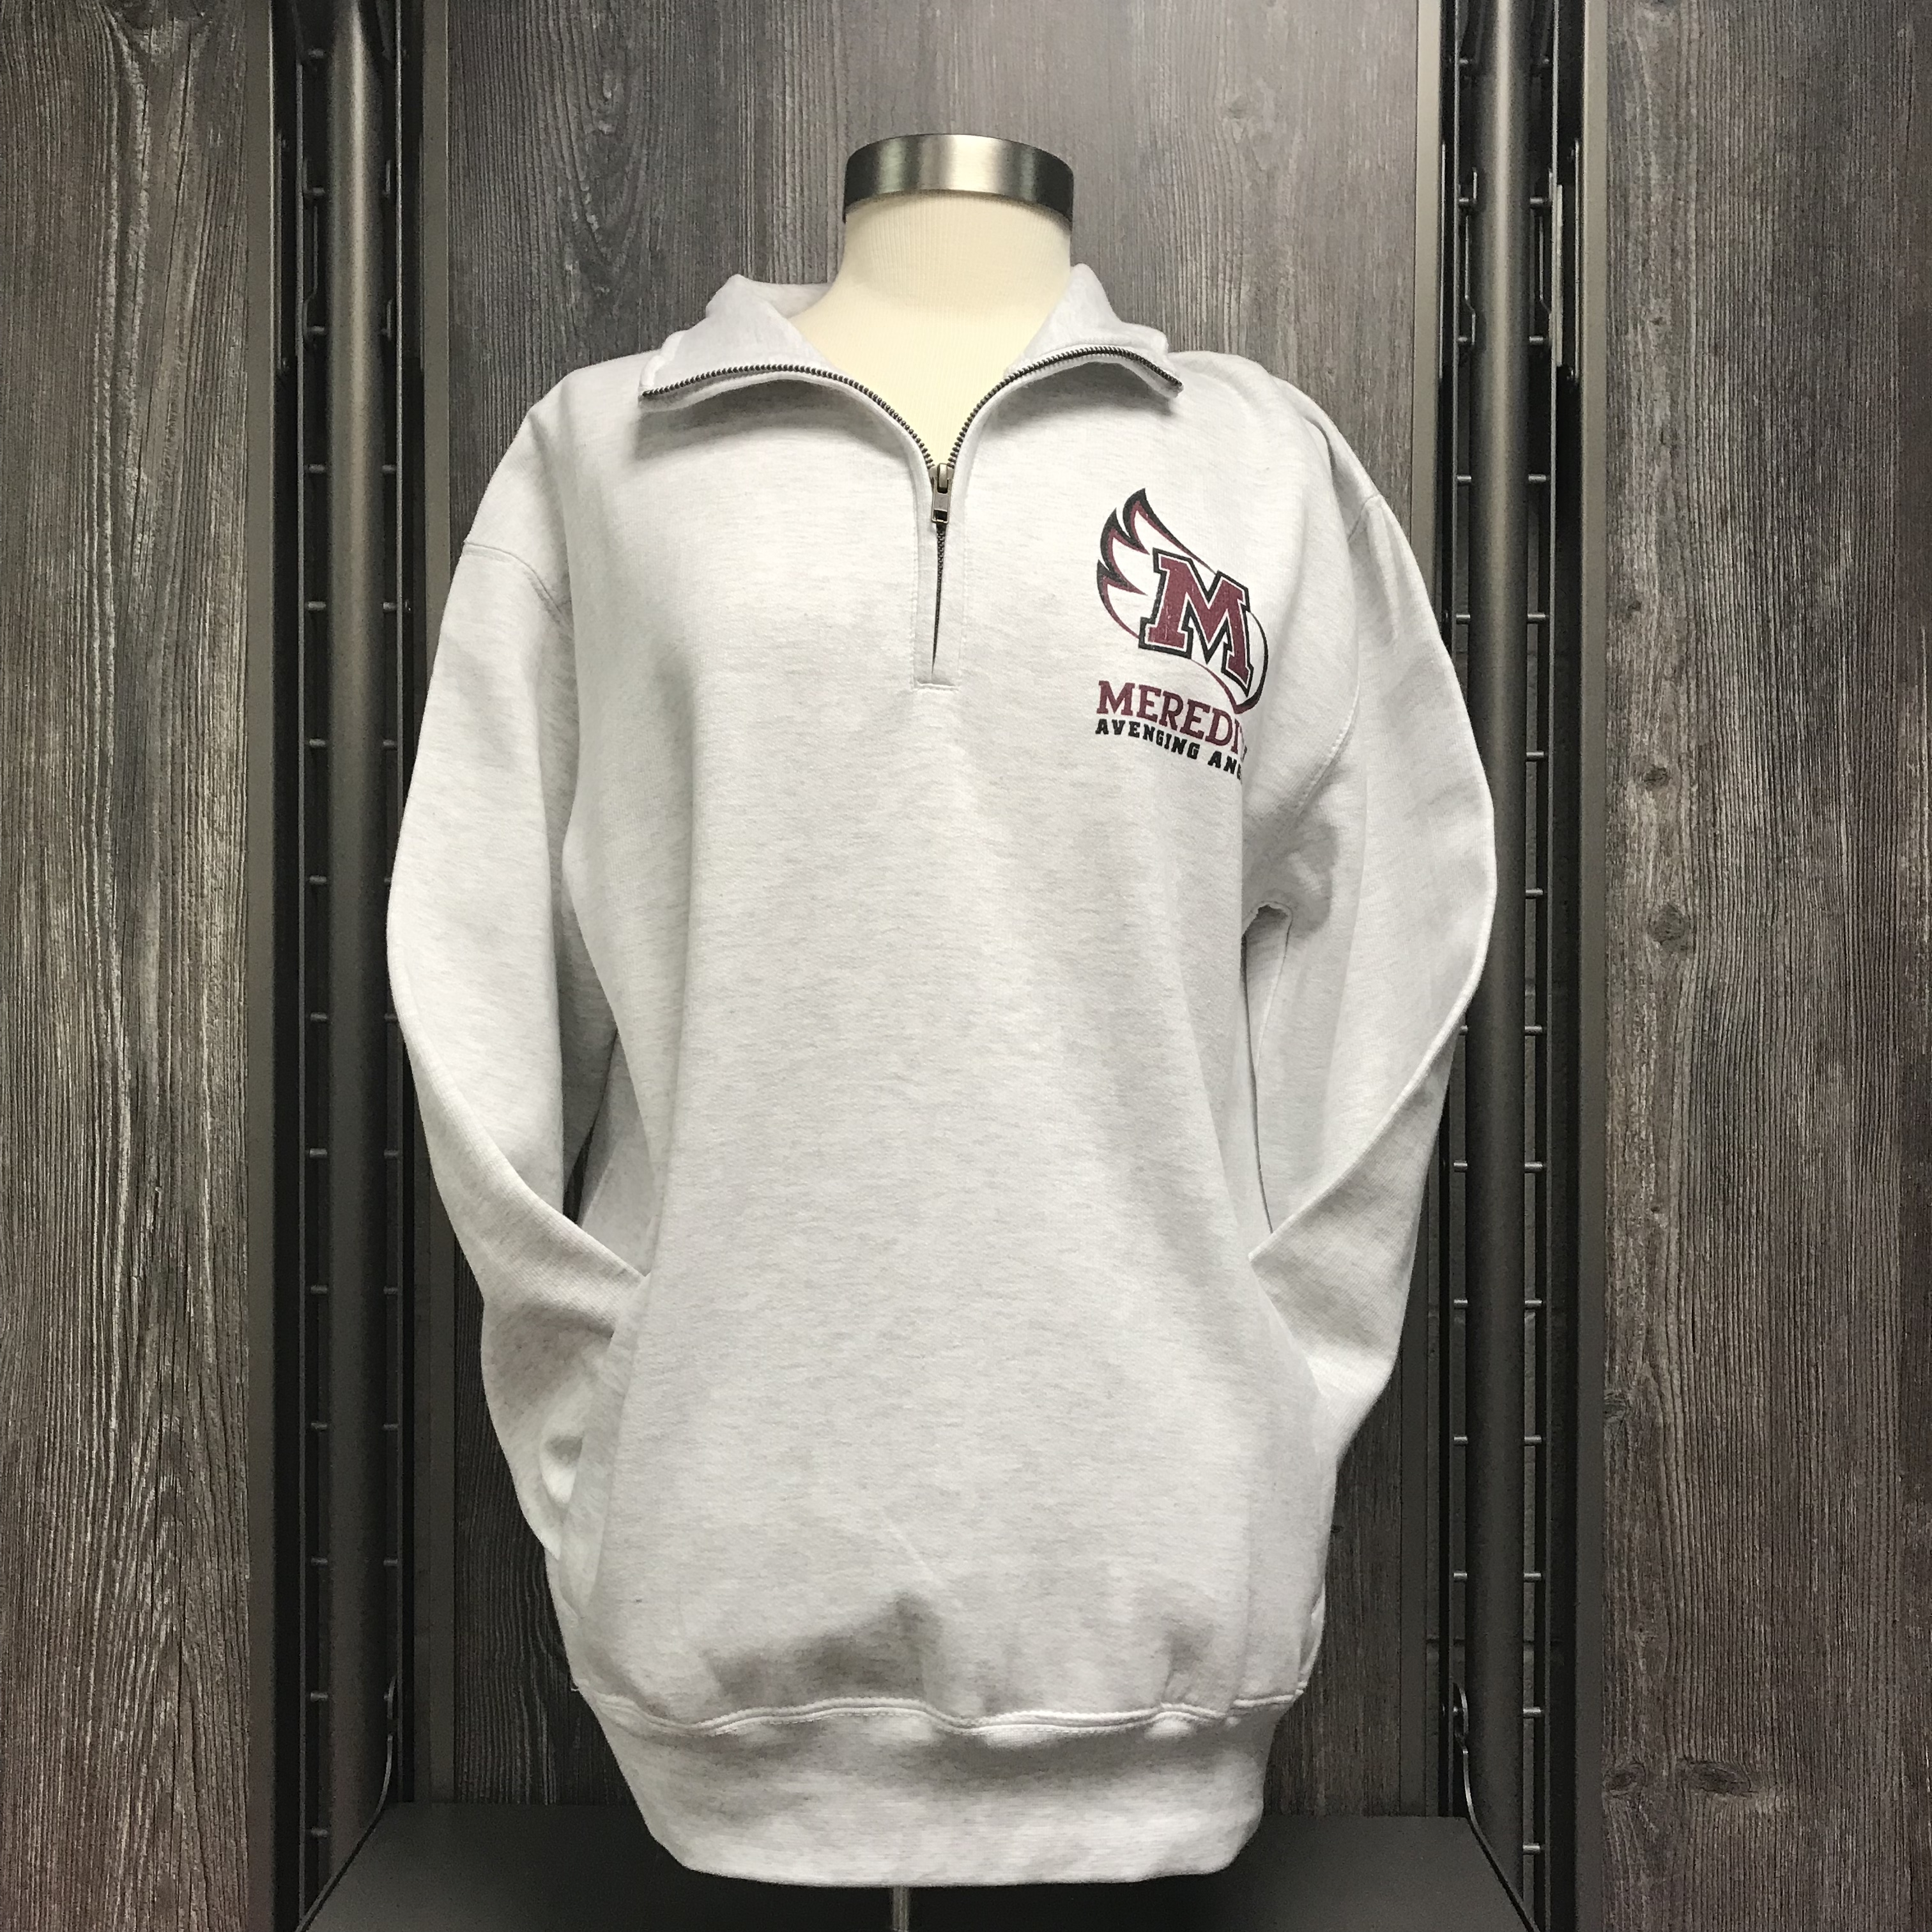 Image for the Classic Fleece 1/4 Zip, Ash Gray product